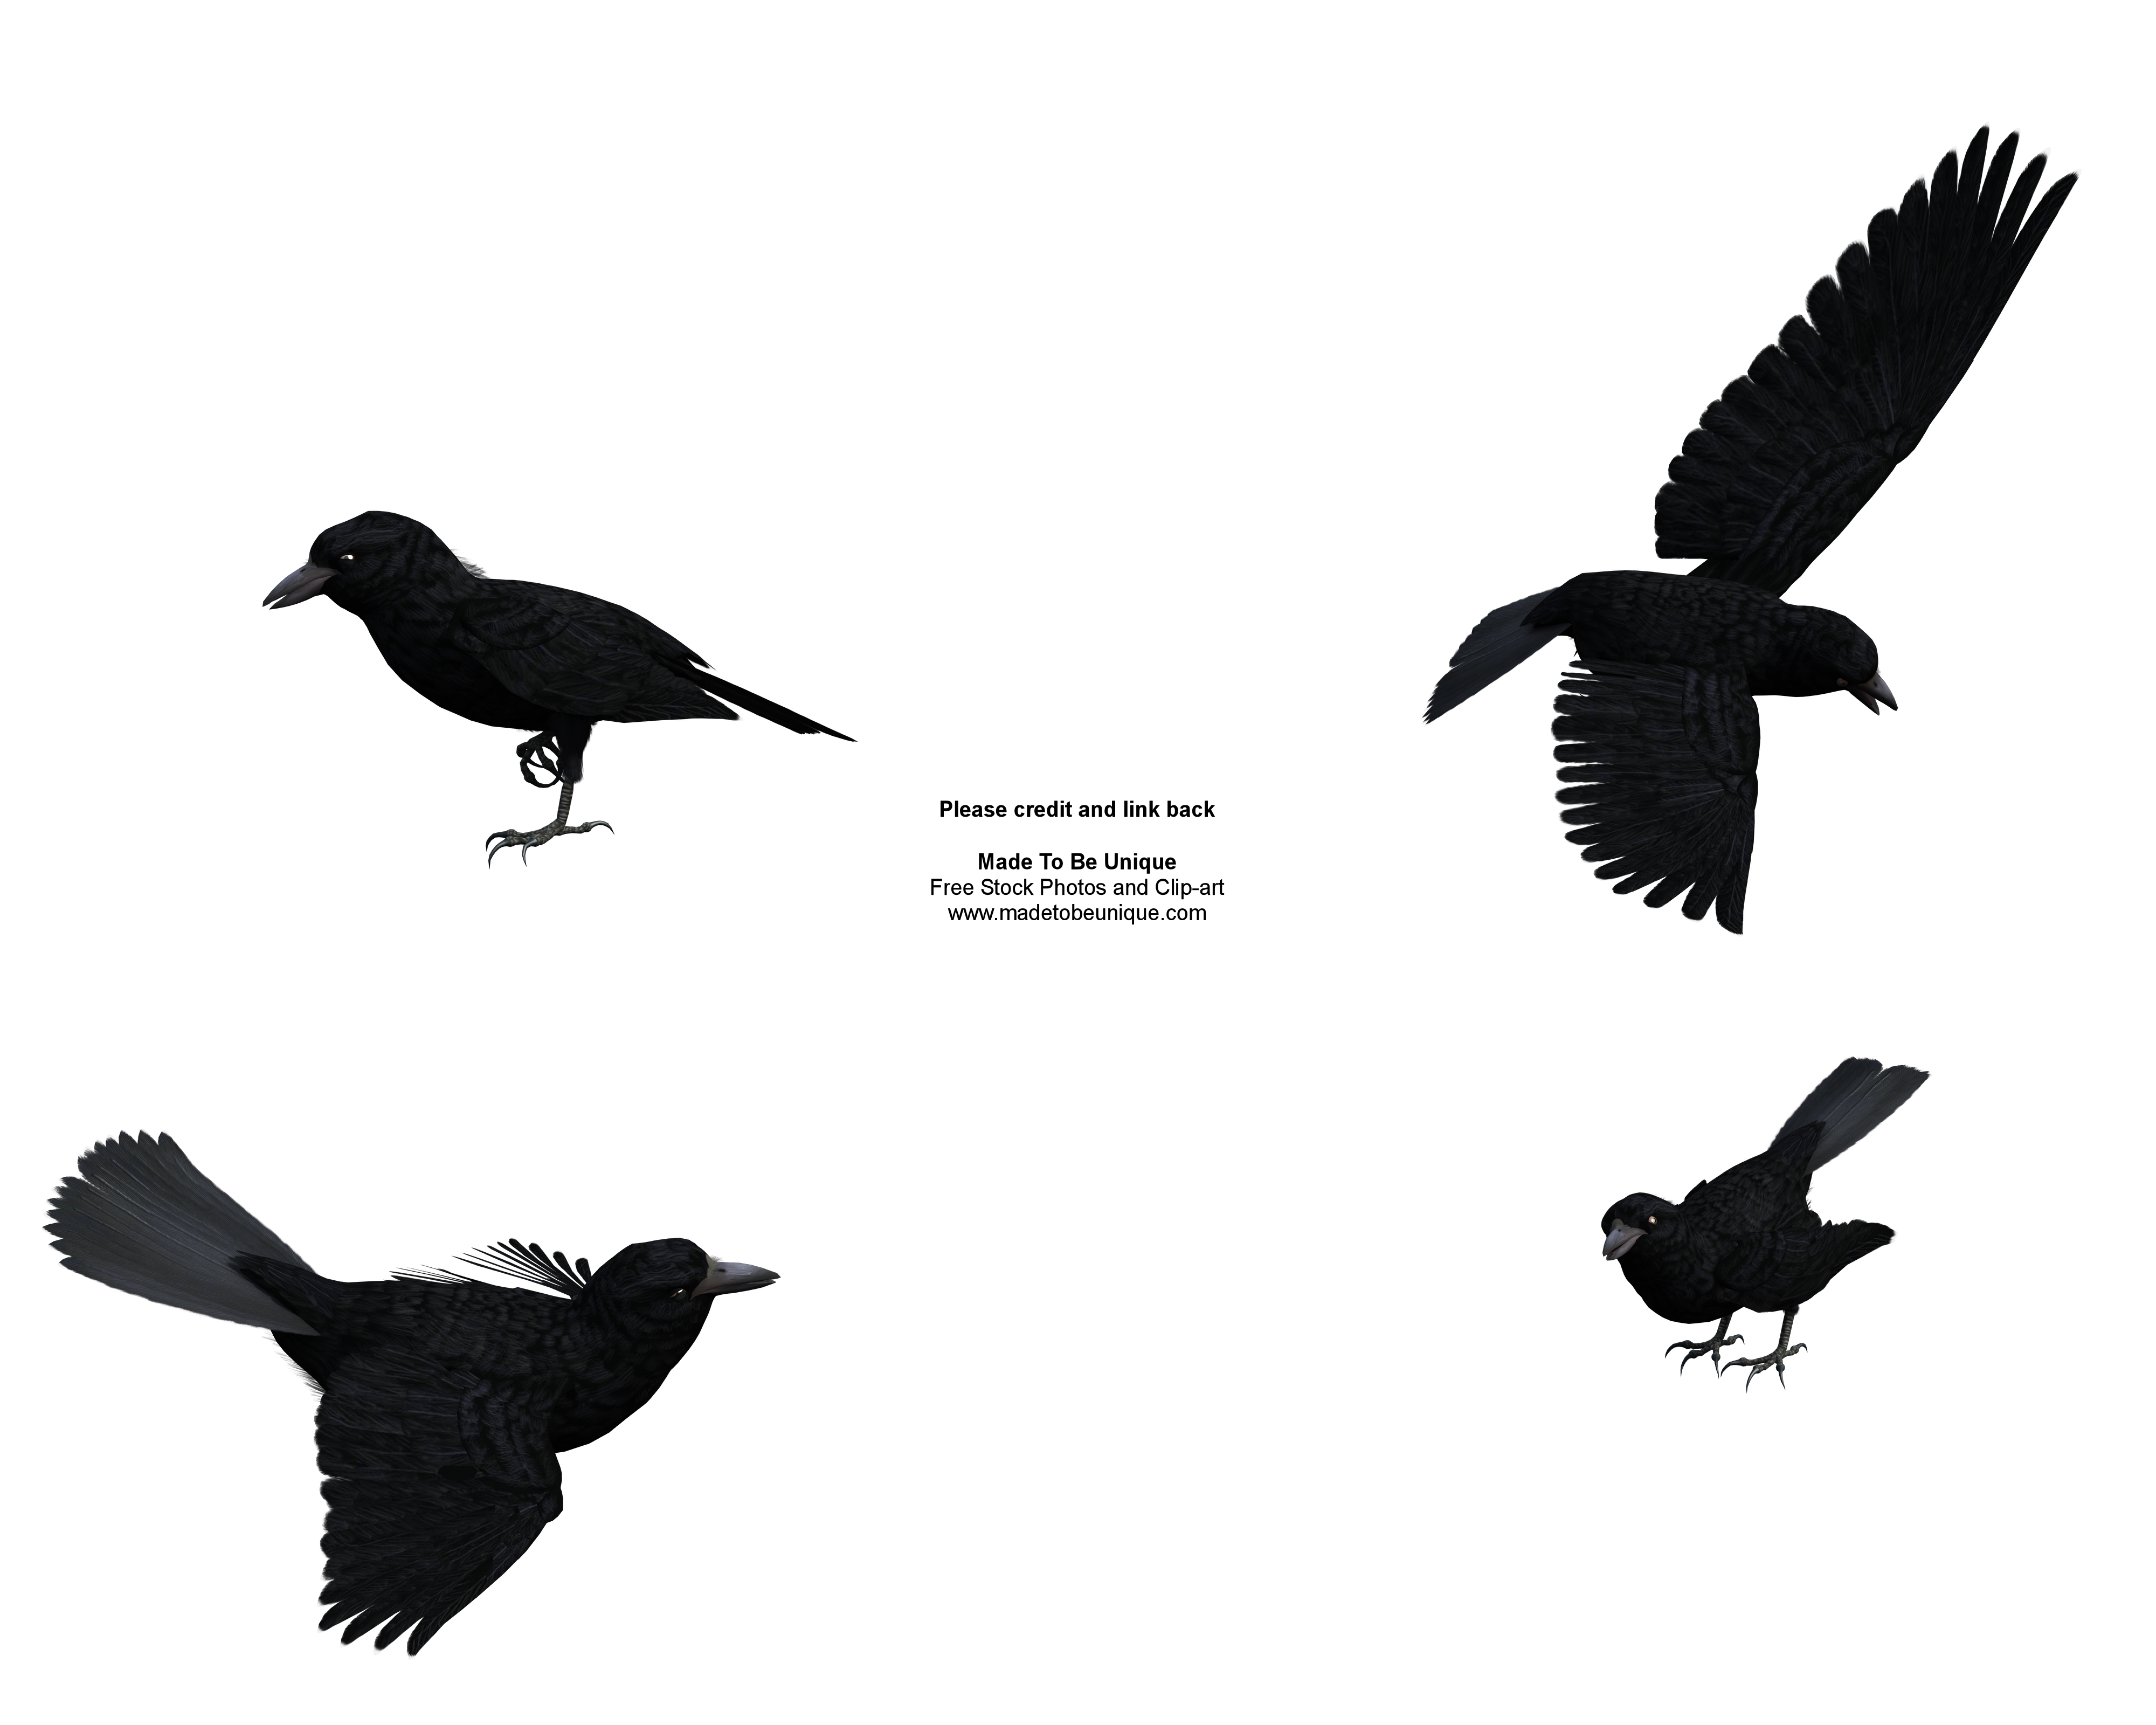 Common Raven clipart #1, Download drawings